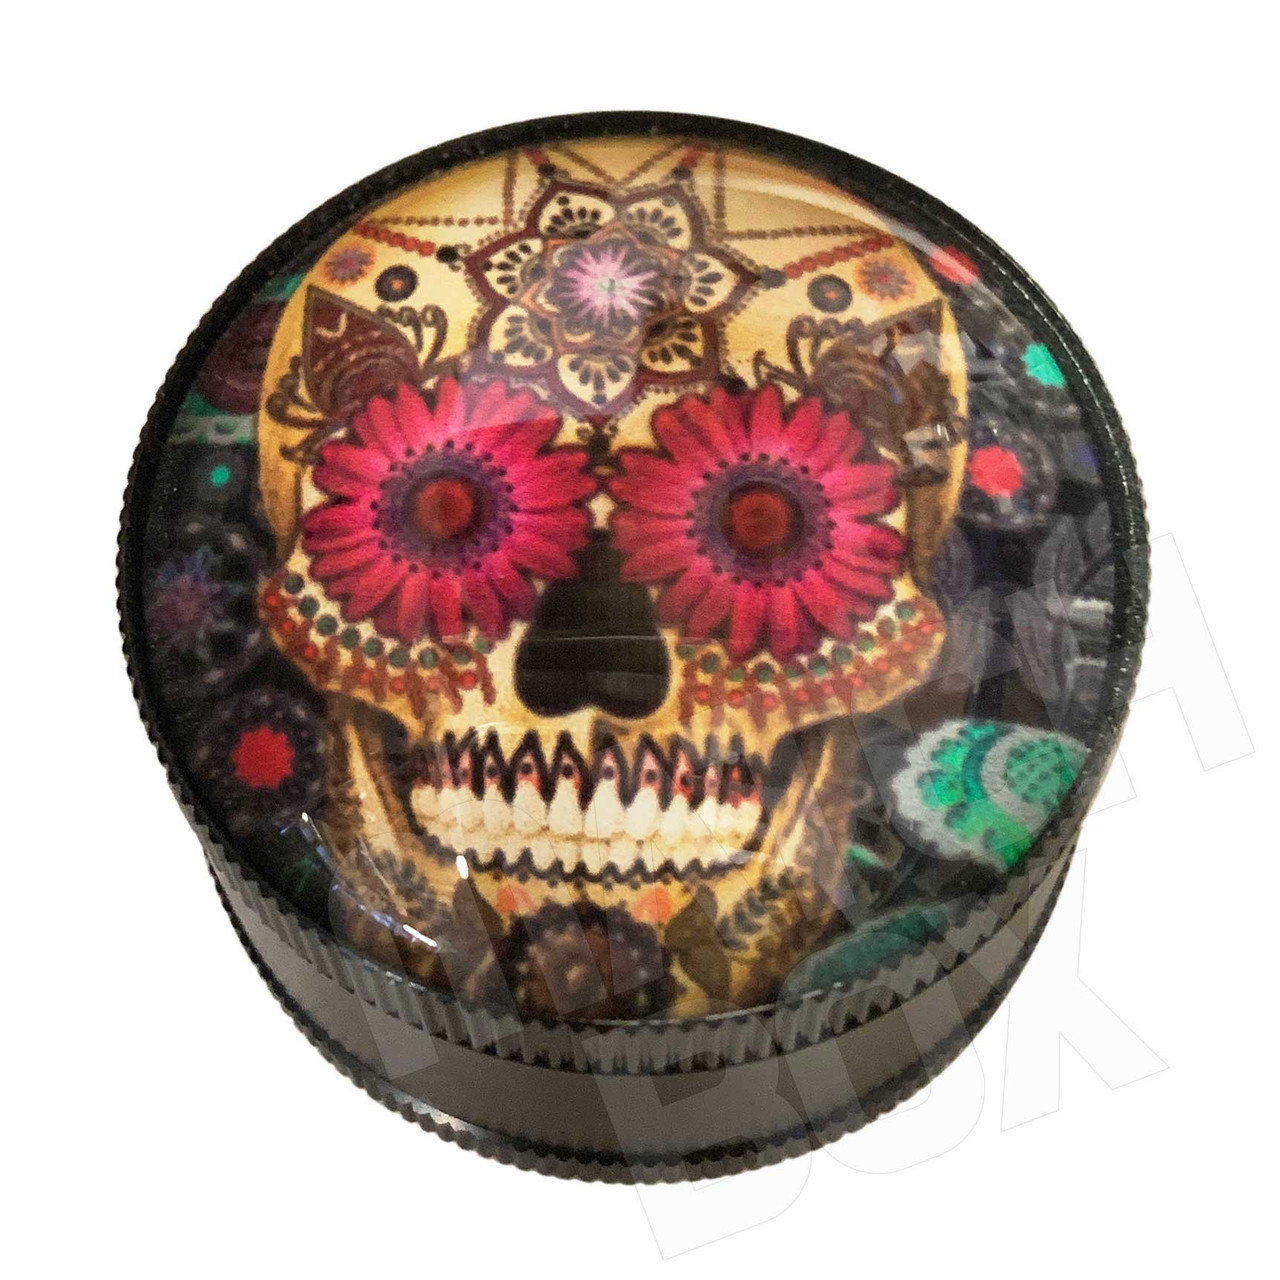 Skull Candy Pink Eyes 50mm Basic Grinder